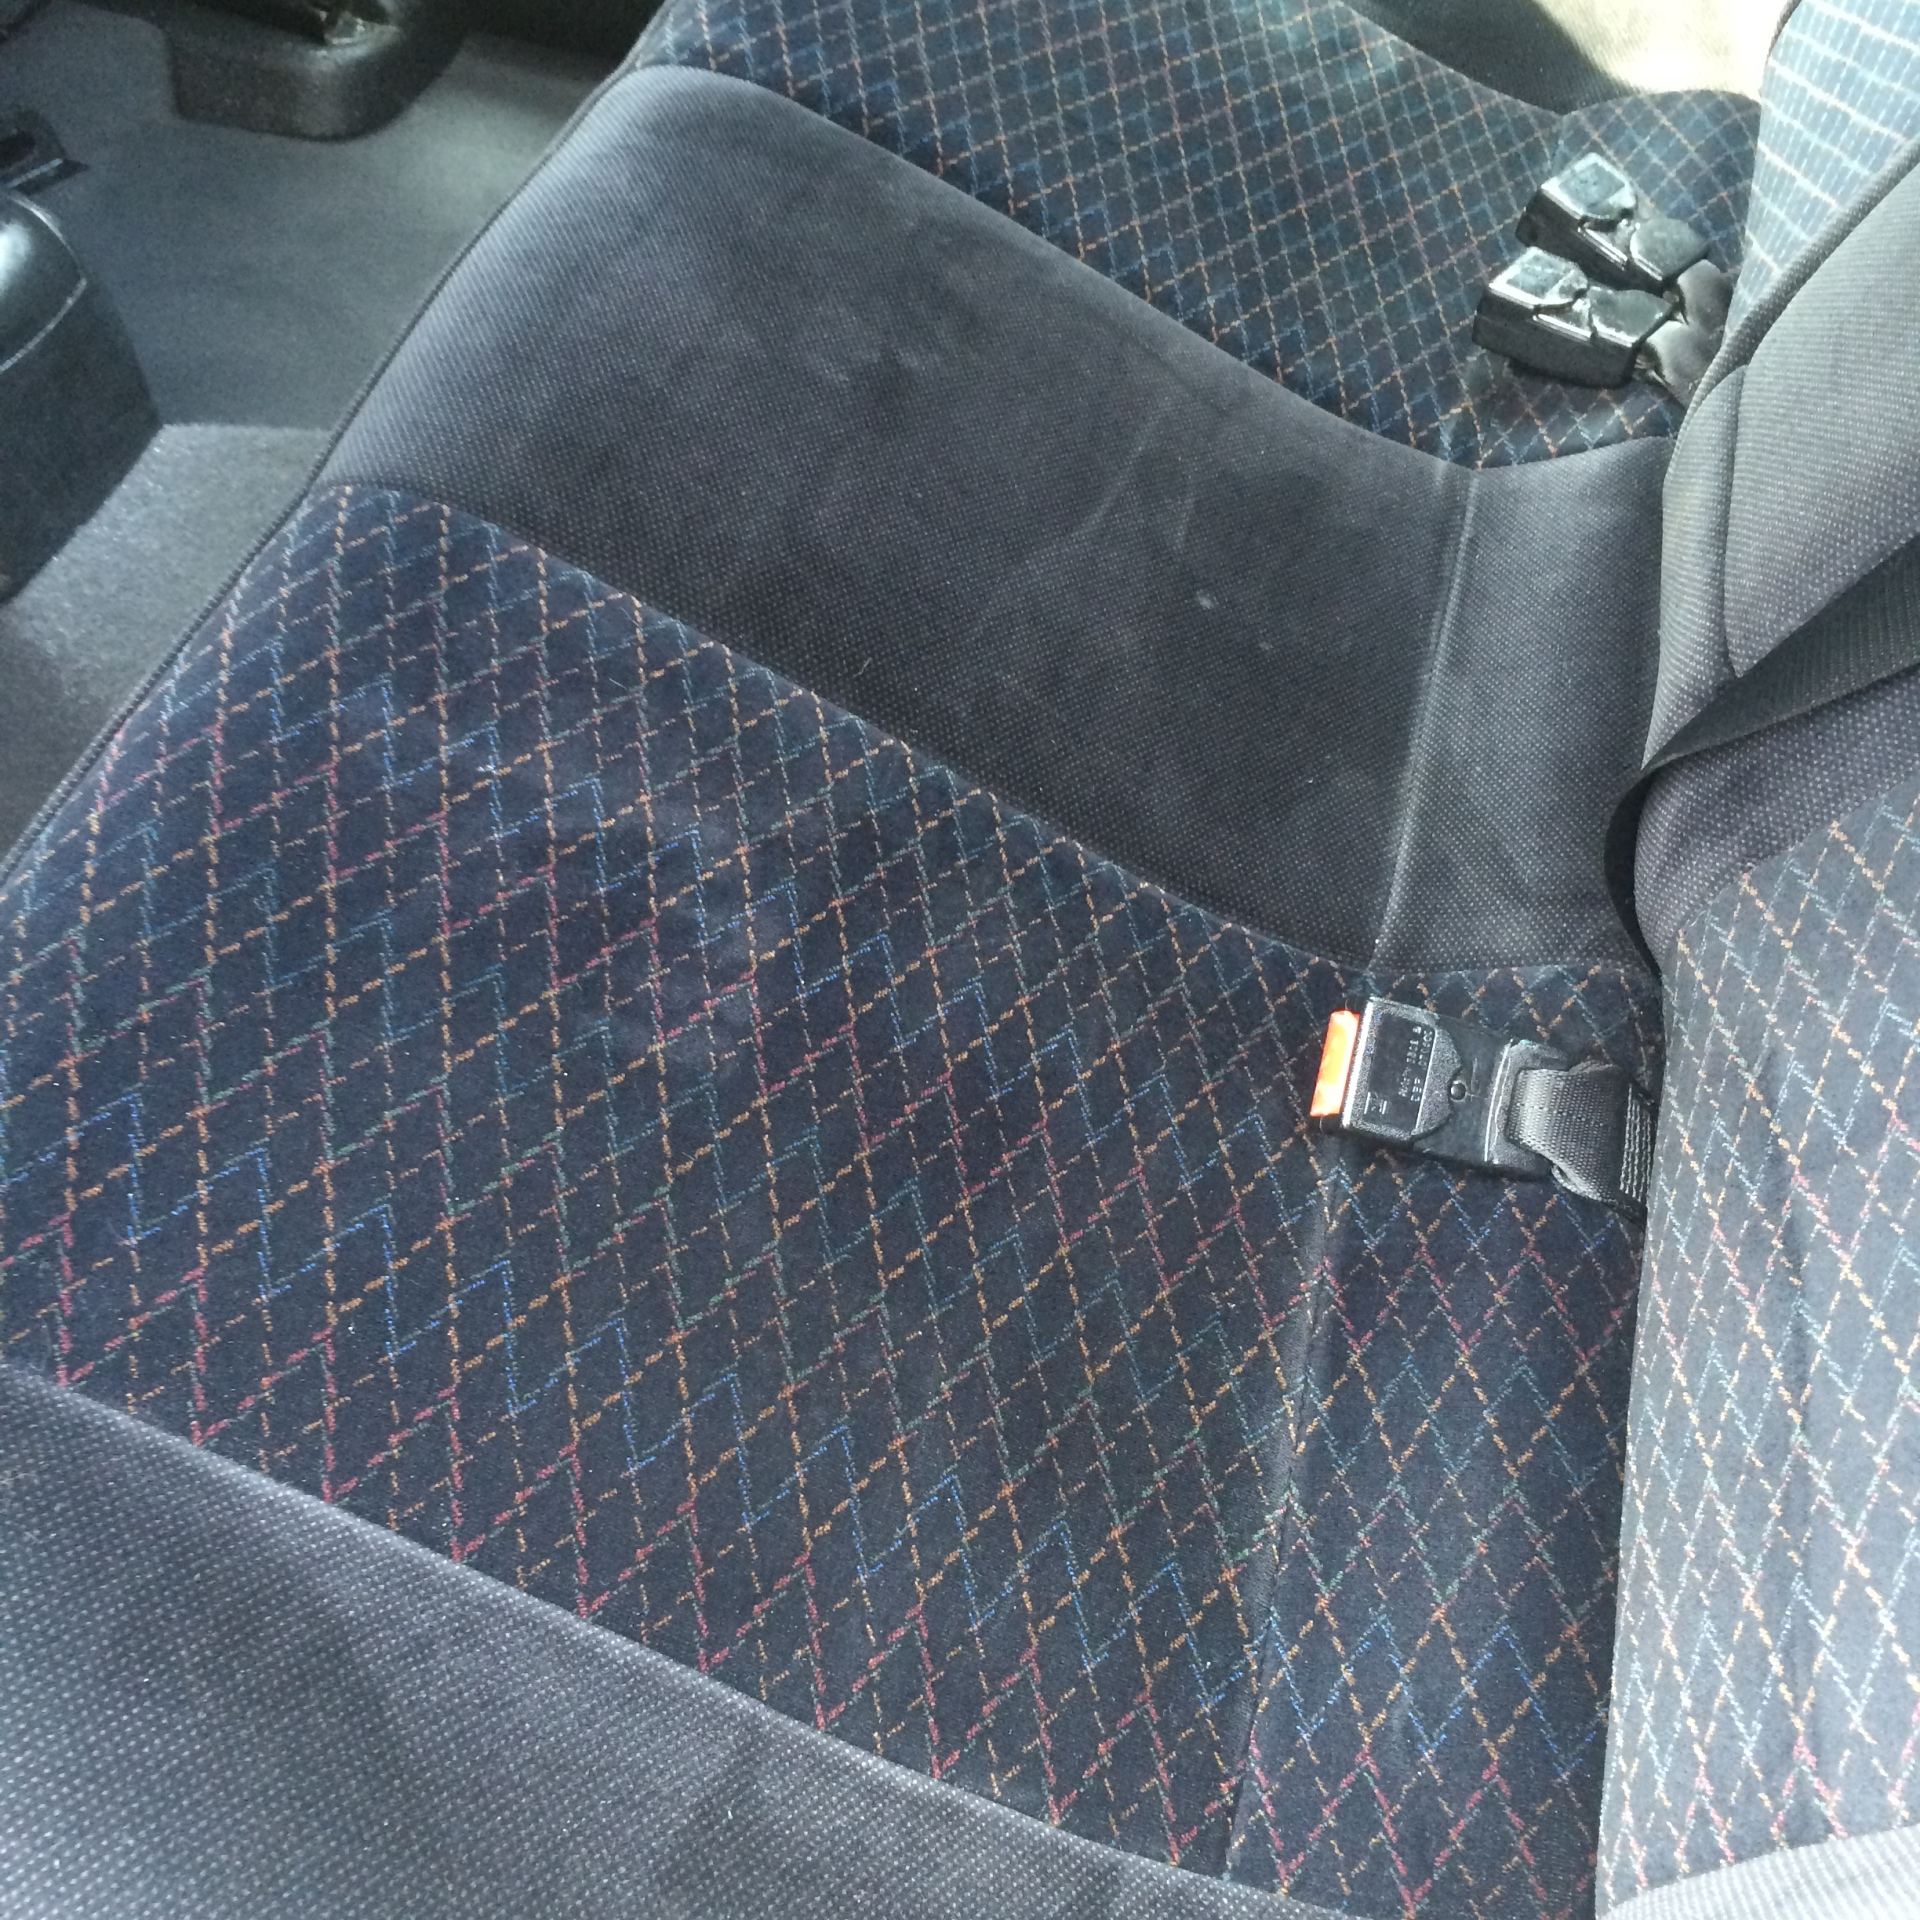 Car Upholstery & Seat Cleaning